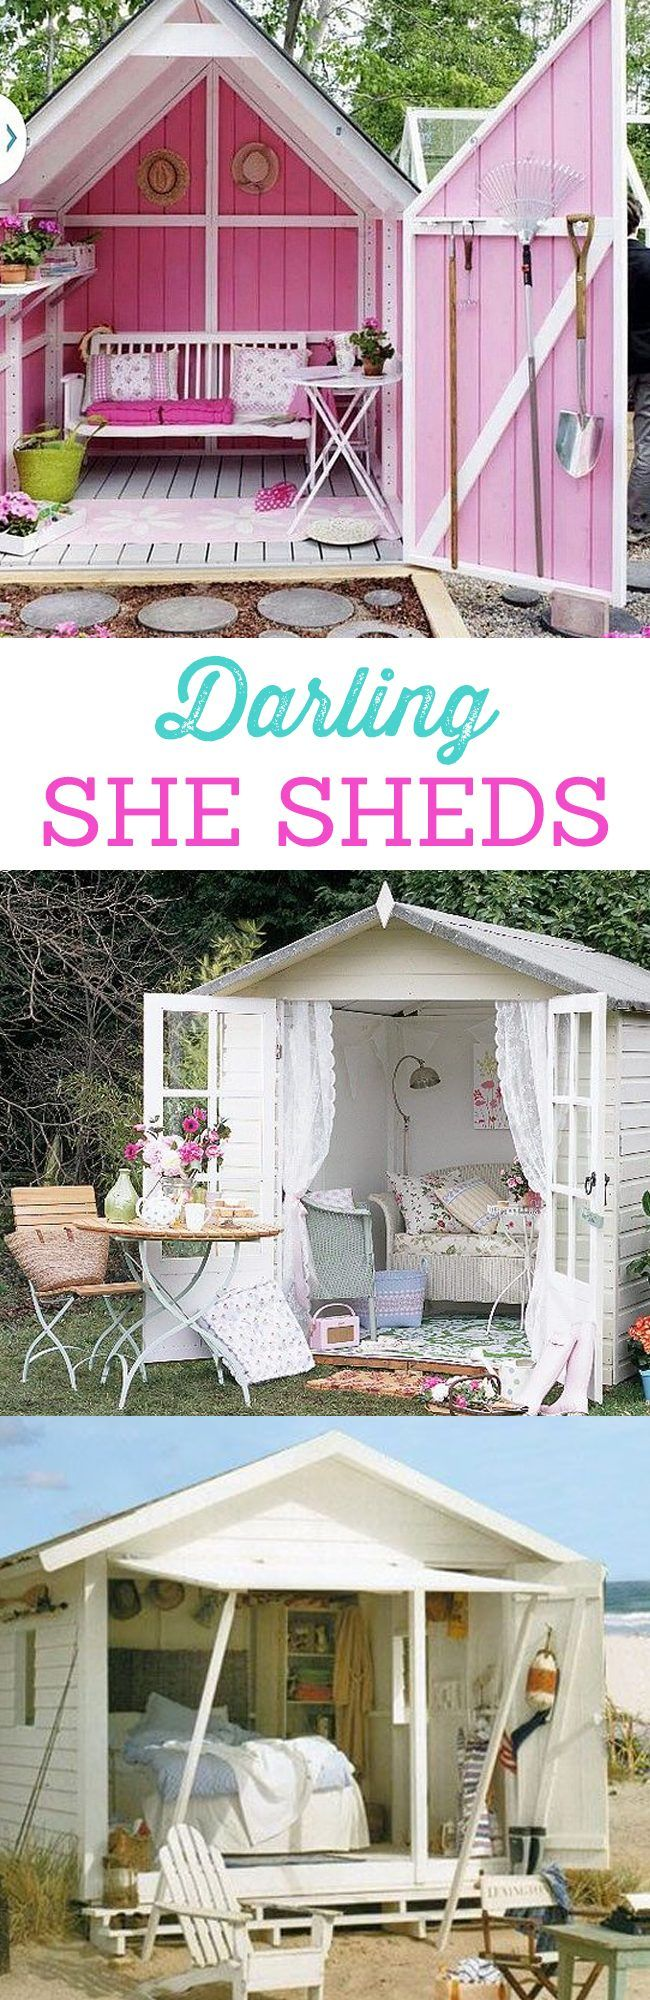 Darling She Sheds for every girl! Dream spaces for women. Must see these cute houses!! LivingLocurto.com #shedplans